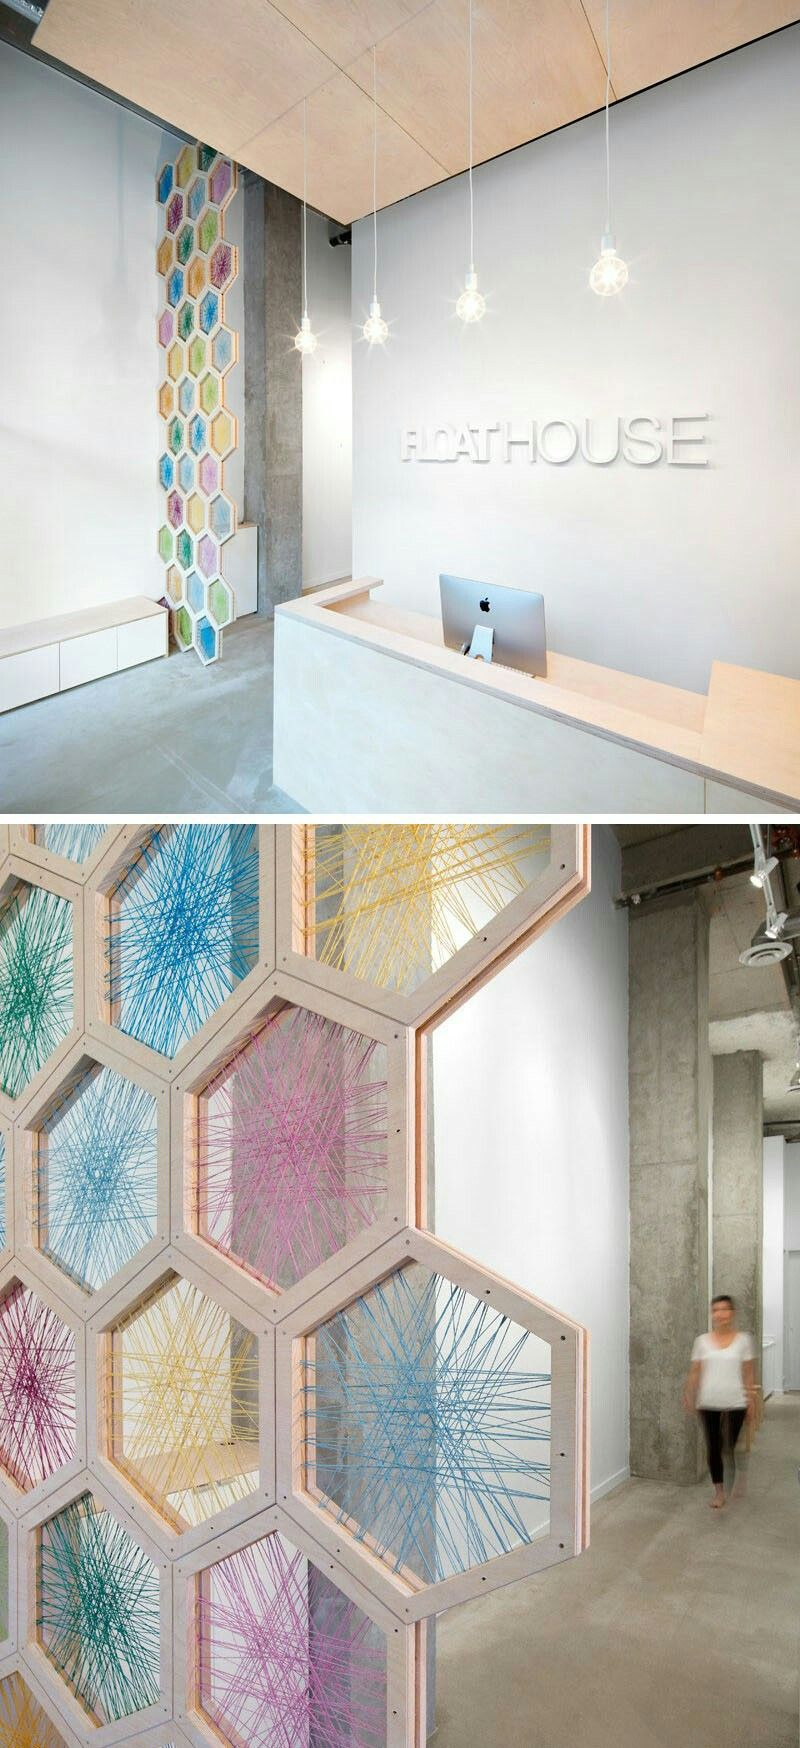 Hexagon dividee design pinterest interiors divider and walls